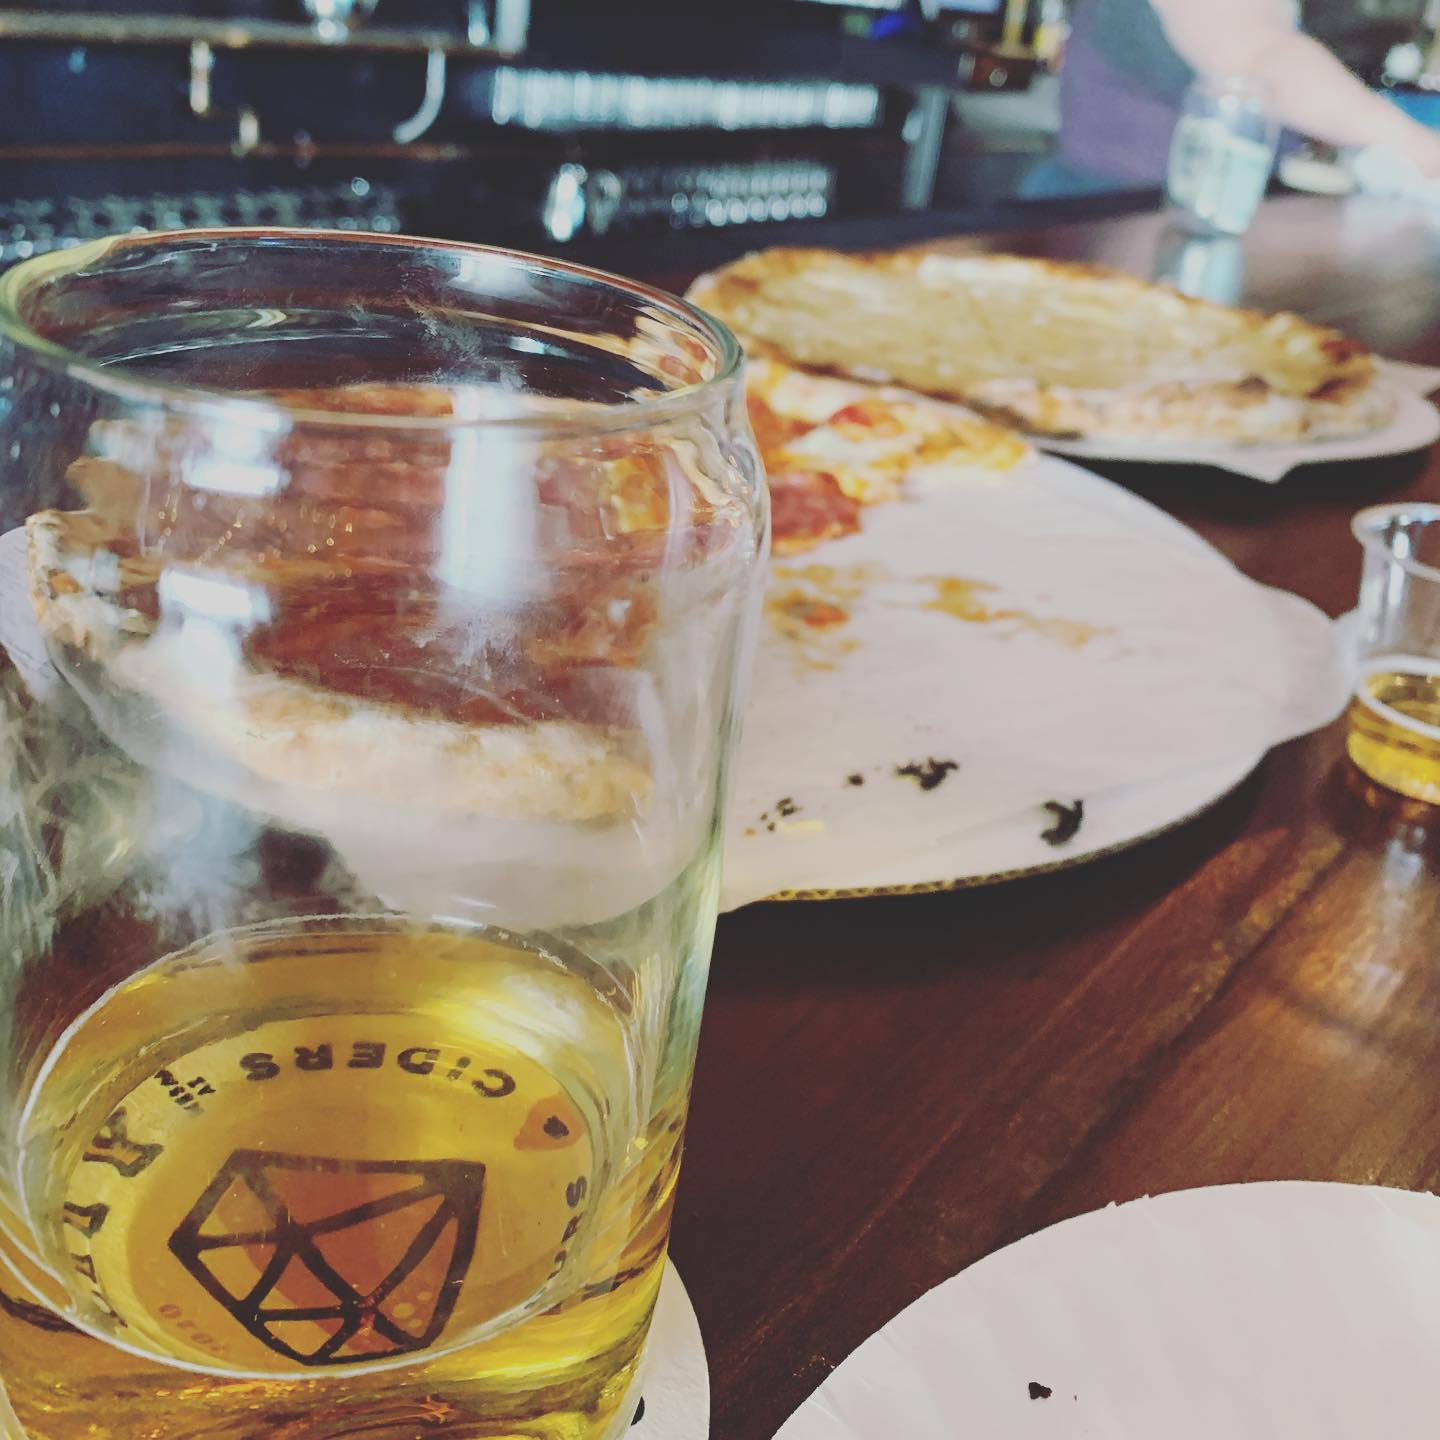 Cider Corps (40 Myke Myke) and their hot honey pizza (Salami) puts Hanny's on notice. Wow.